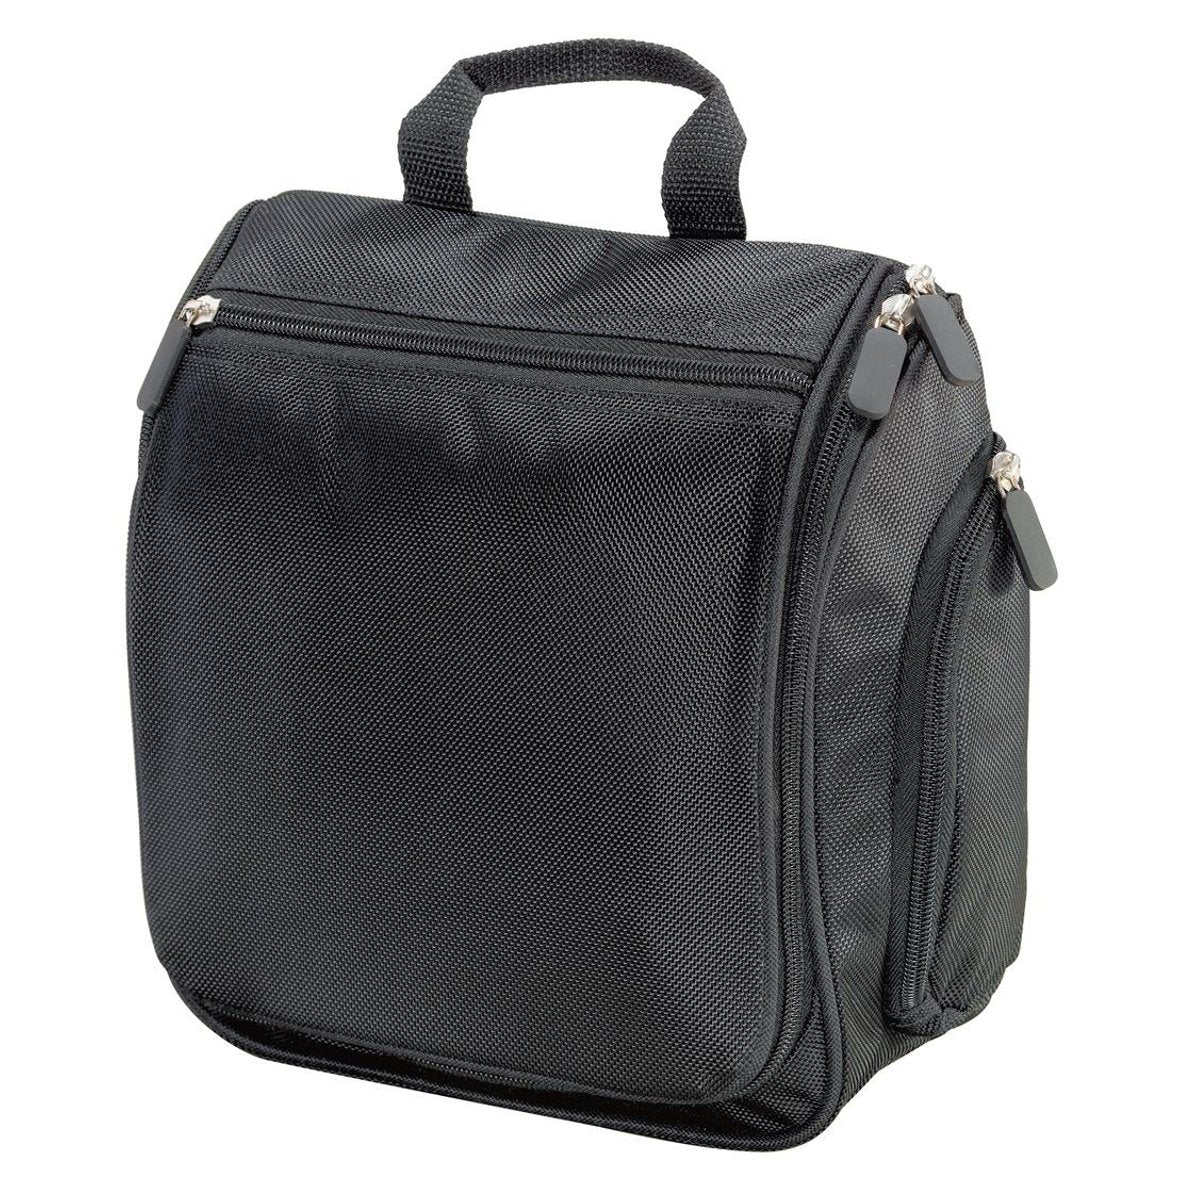 Men's Hanging Toiletry Kit Bag Black